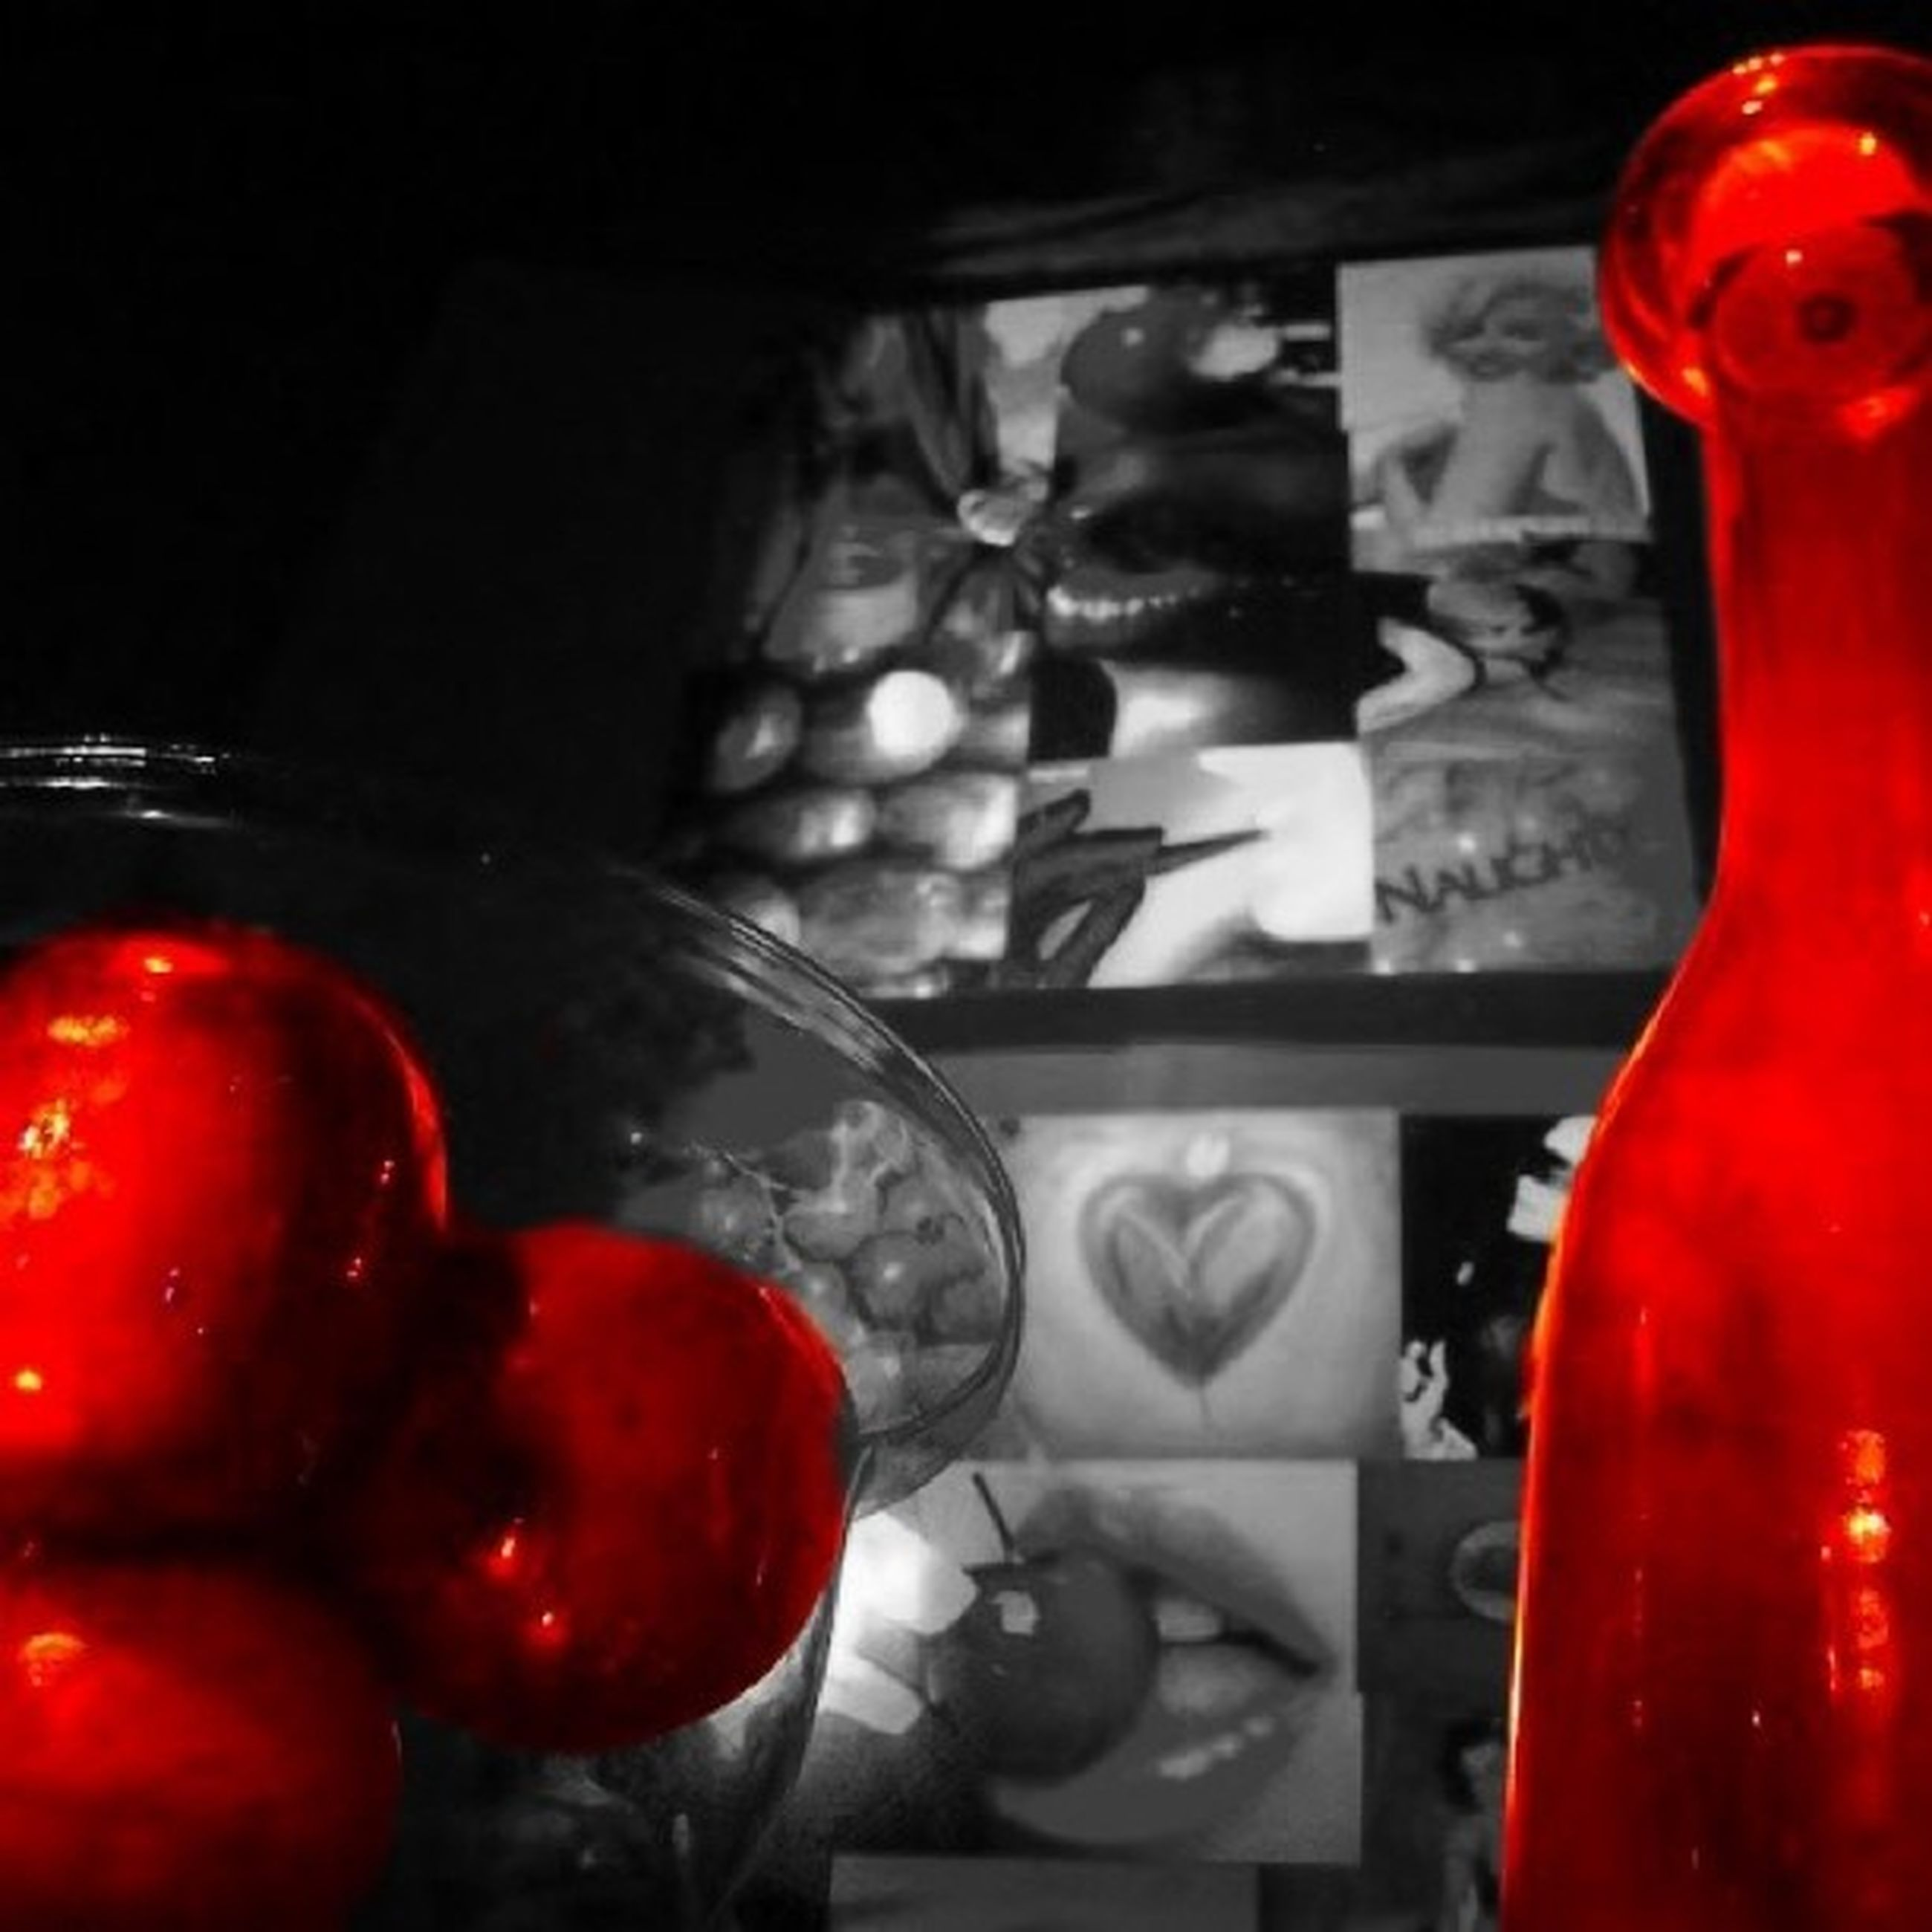 red, indoors, close-up, food and drink, focus on foreground, glass - material, still life, metal, transparent, no people, healthy eating, window, container, food, table, day, selective focus, drink, home interior, fruit